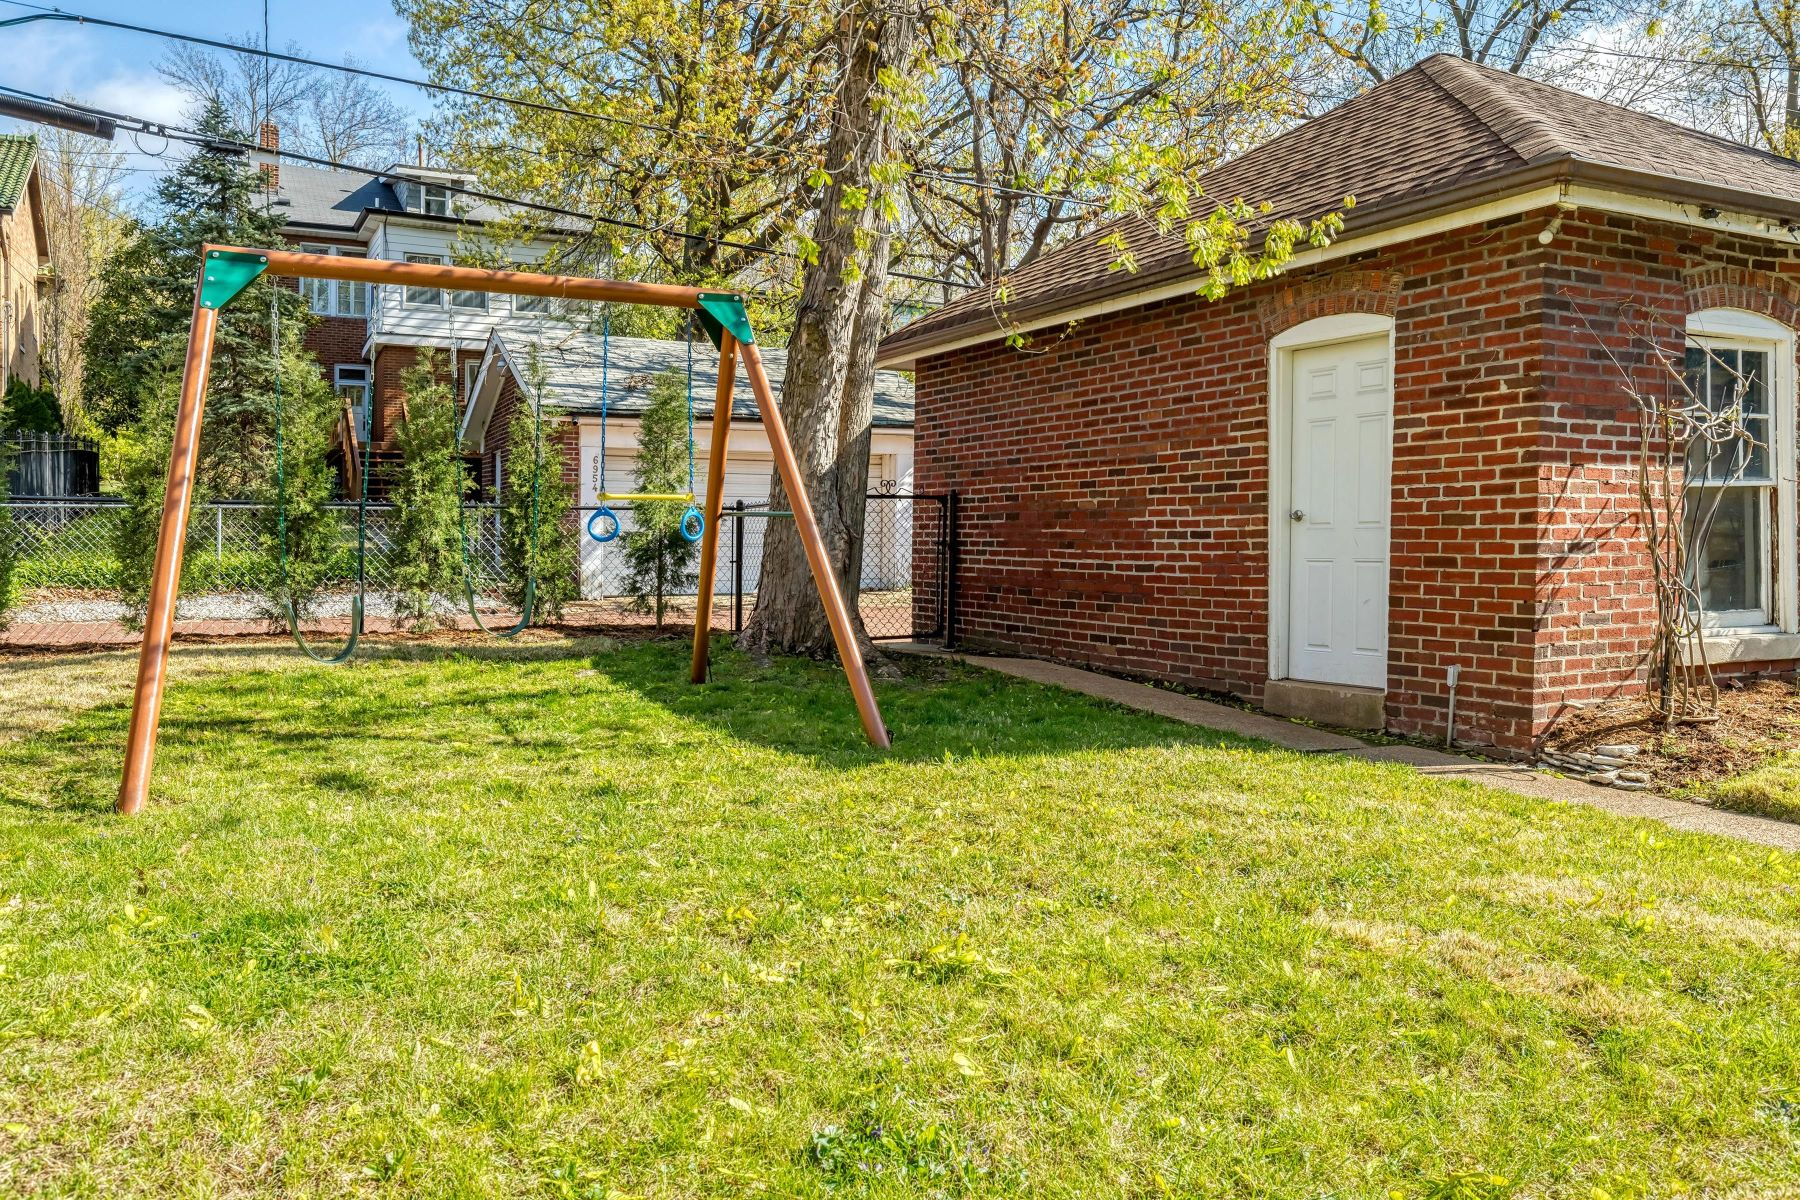 Additional photo for property listing at Enticing Charm of a Cotswold Cottage 6959 Waterman Ave St. Louis, Missouri 63130 United States